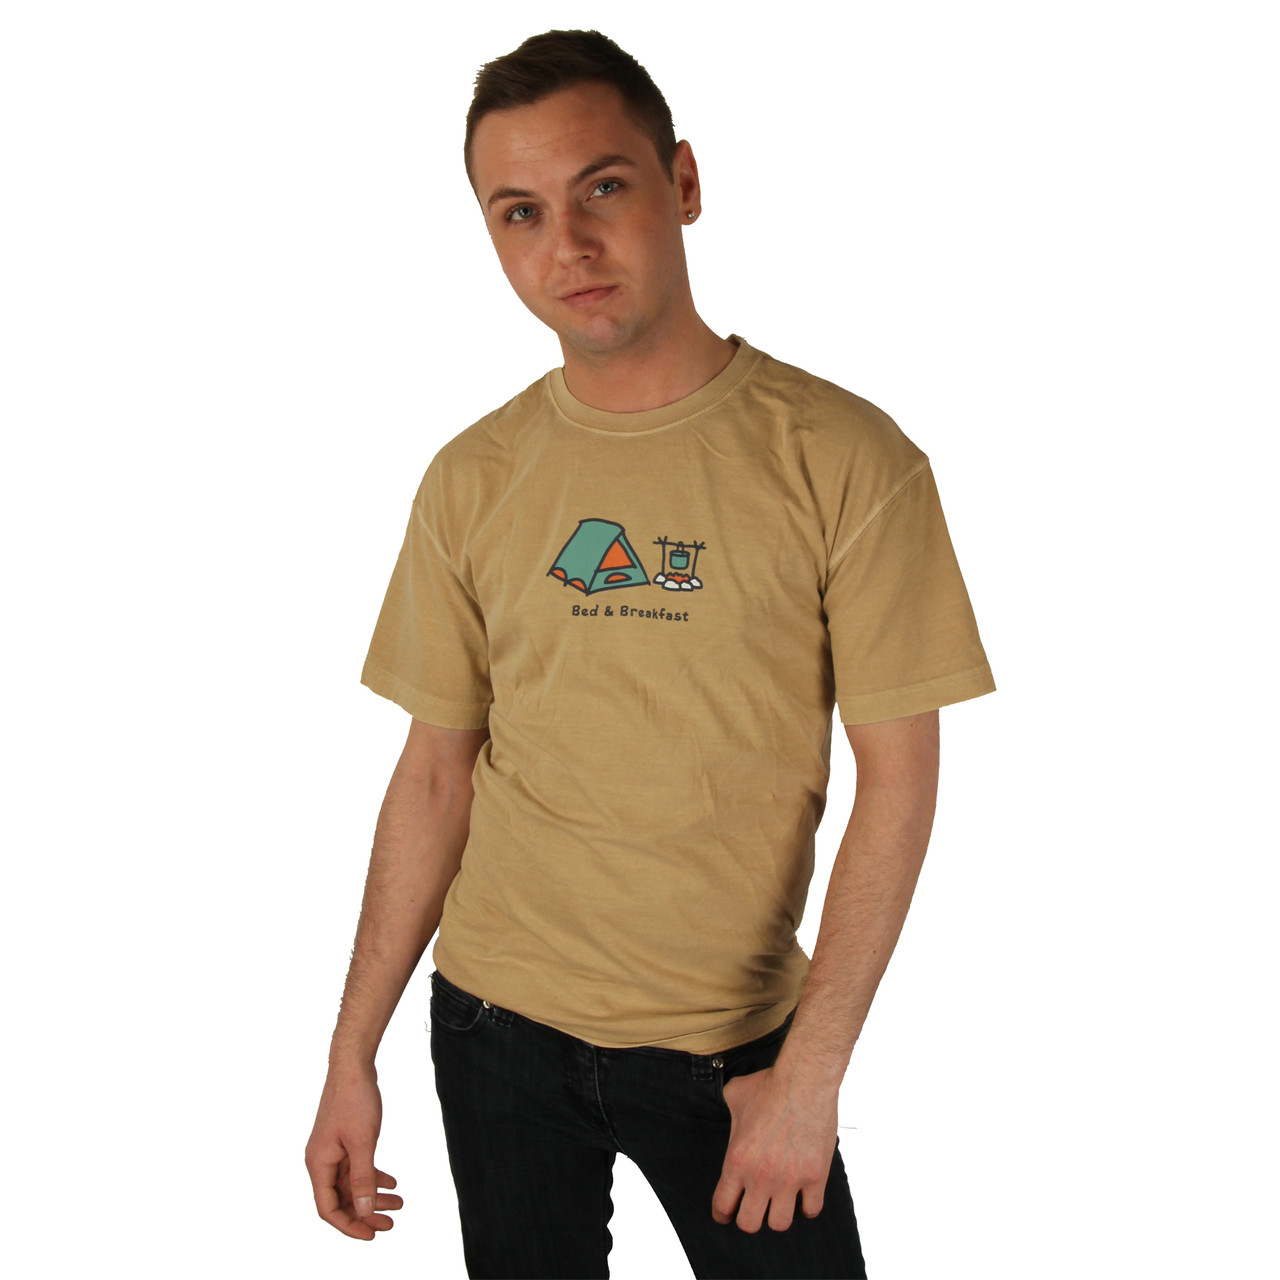 ddec925e383ff4 ... Life is Good Ford Brown Bed & Breakfast Tent Crusher T-Shirt. Loading  zoom